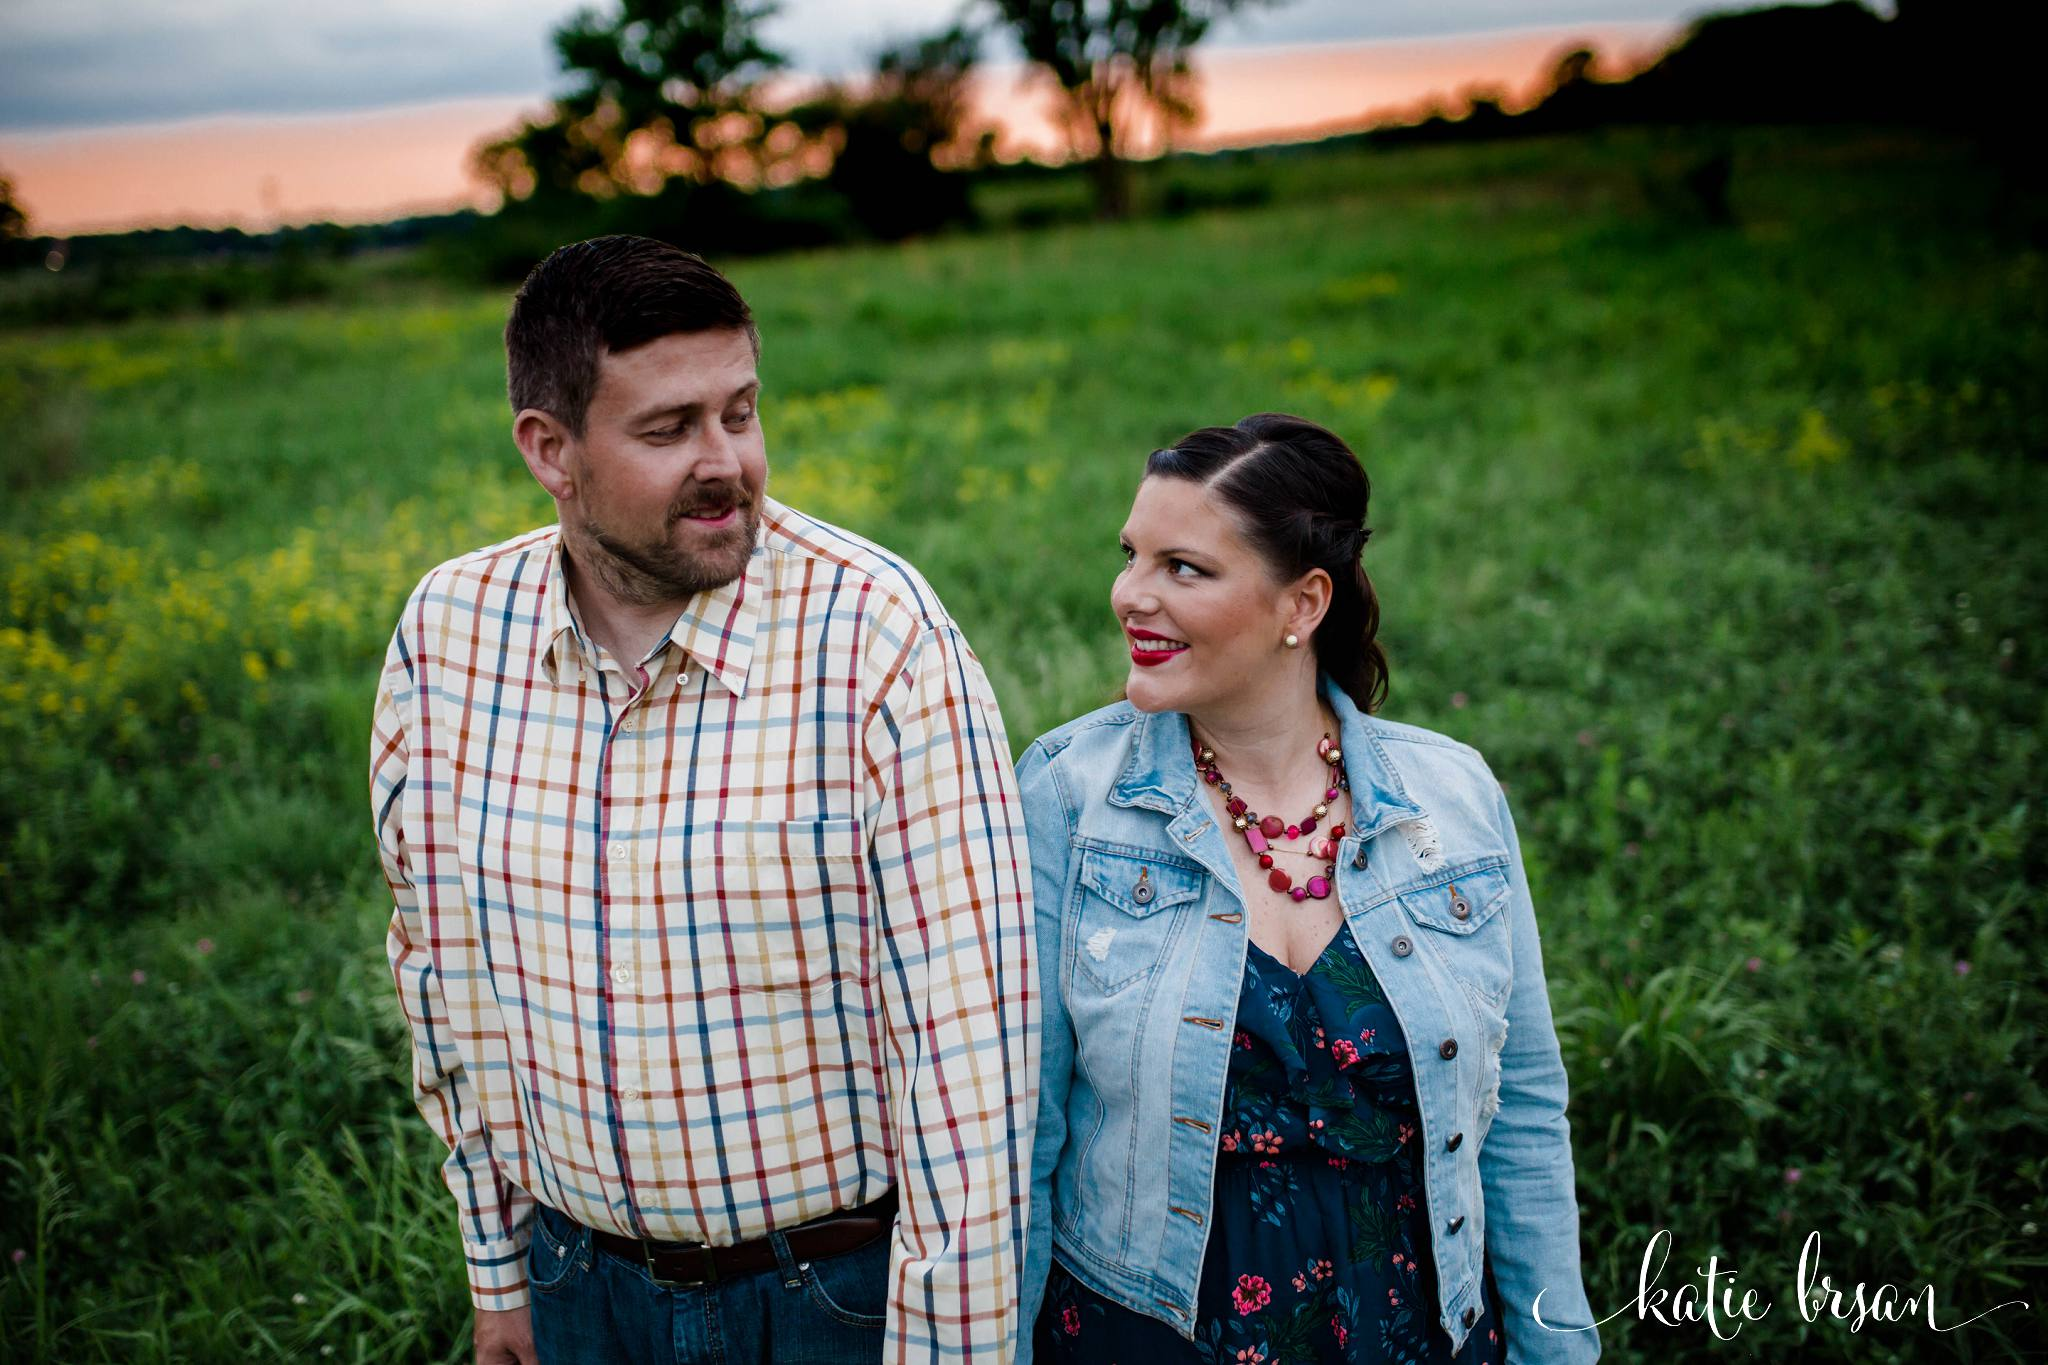 KatieBrsan-HomerGlen-NewLenox-EngagementSession-HadleyValley-TeacherEngagementSession-ChicagoWeddingPhotographer_0593.jpg